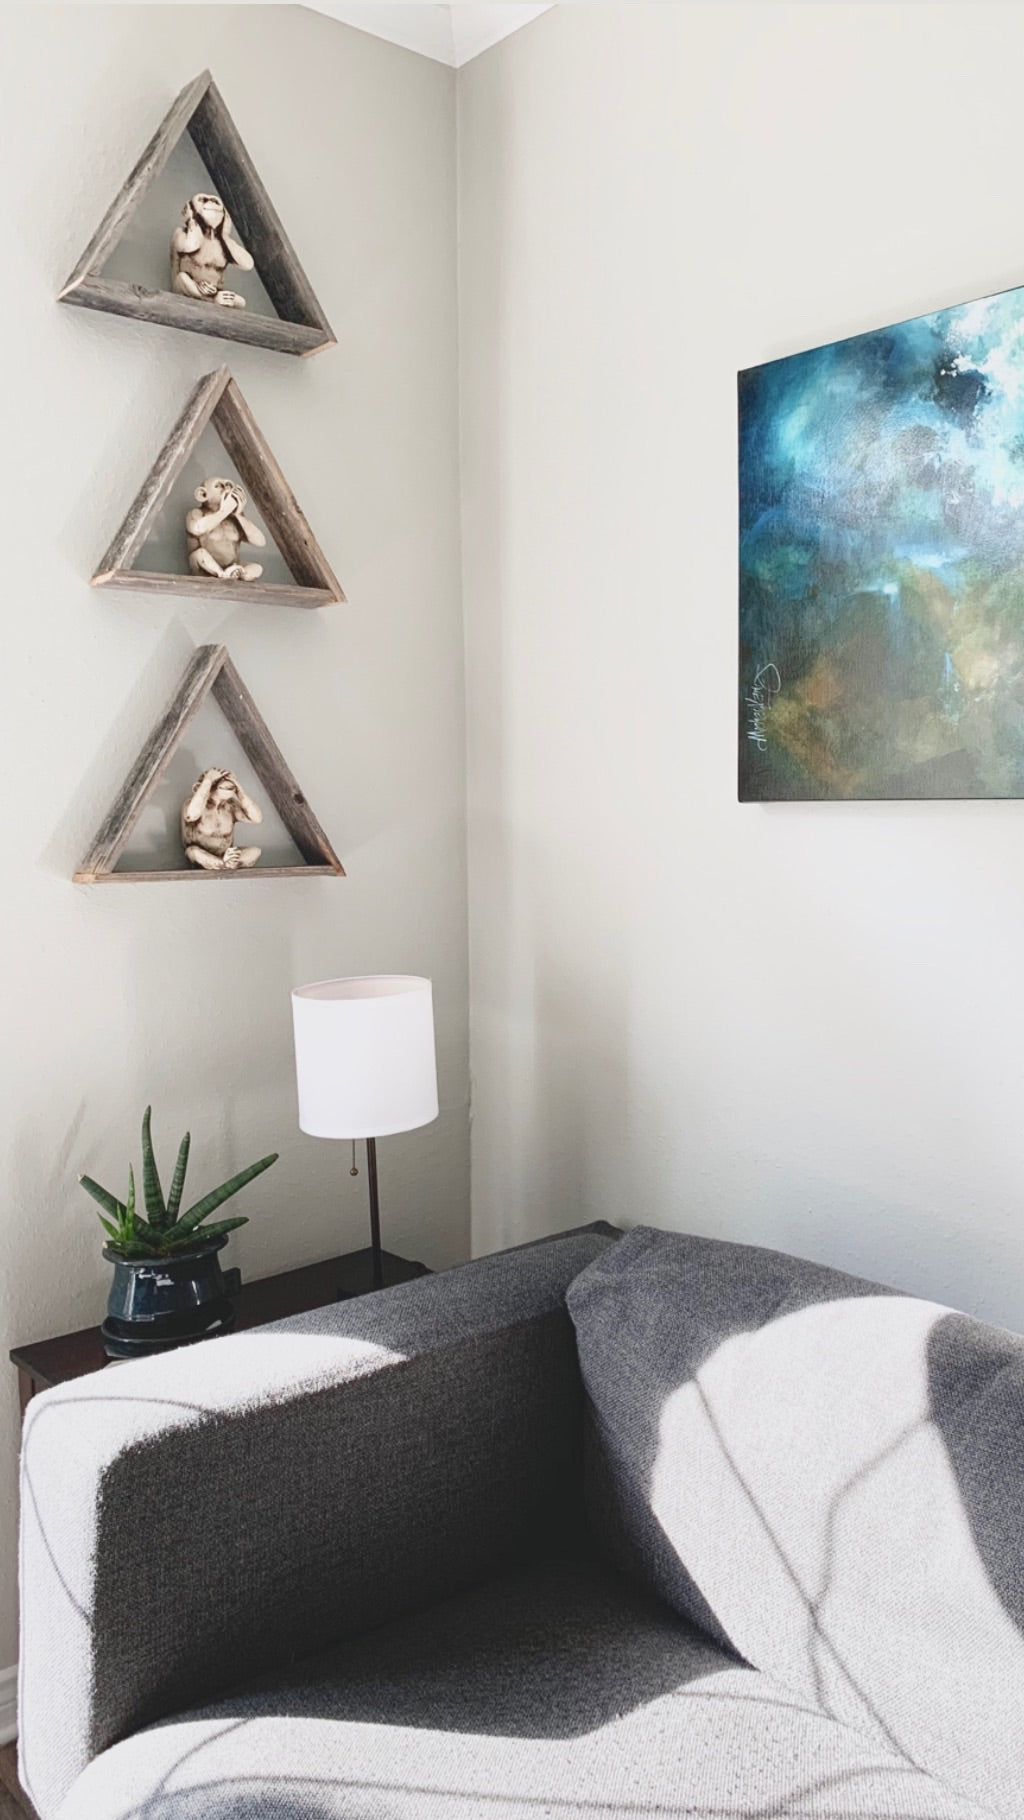 Set of 3 Wood Triangle Geometric Shelves